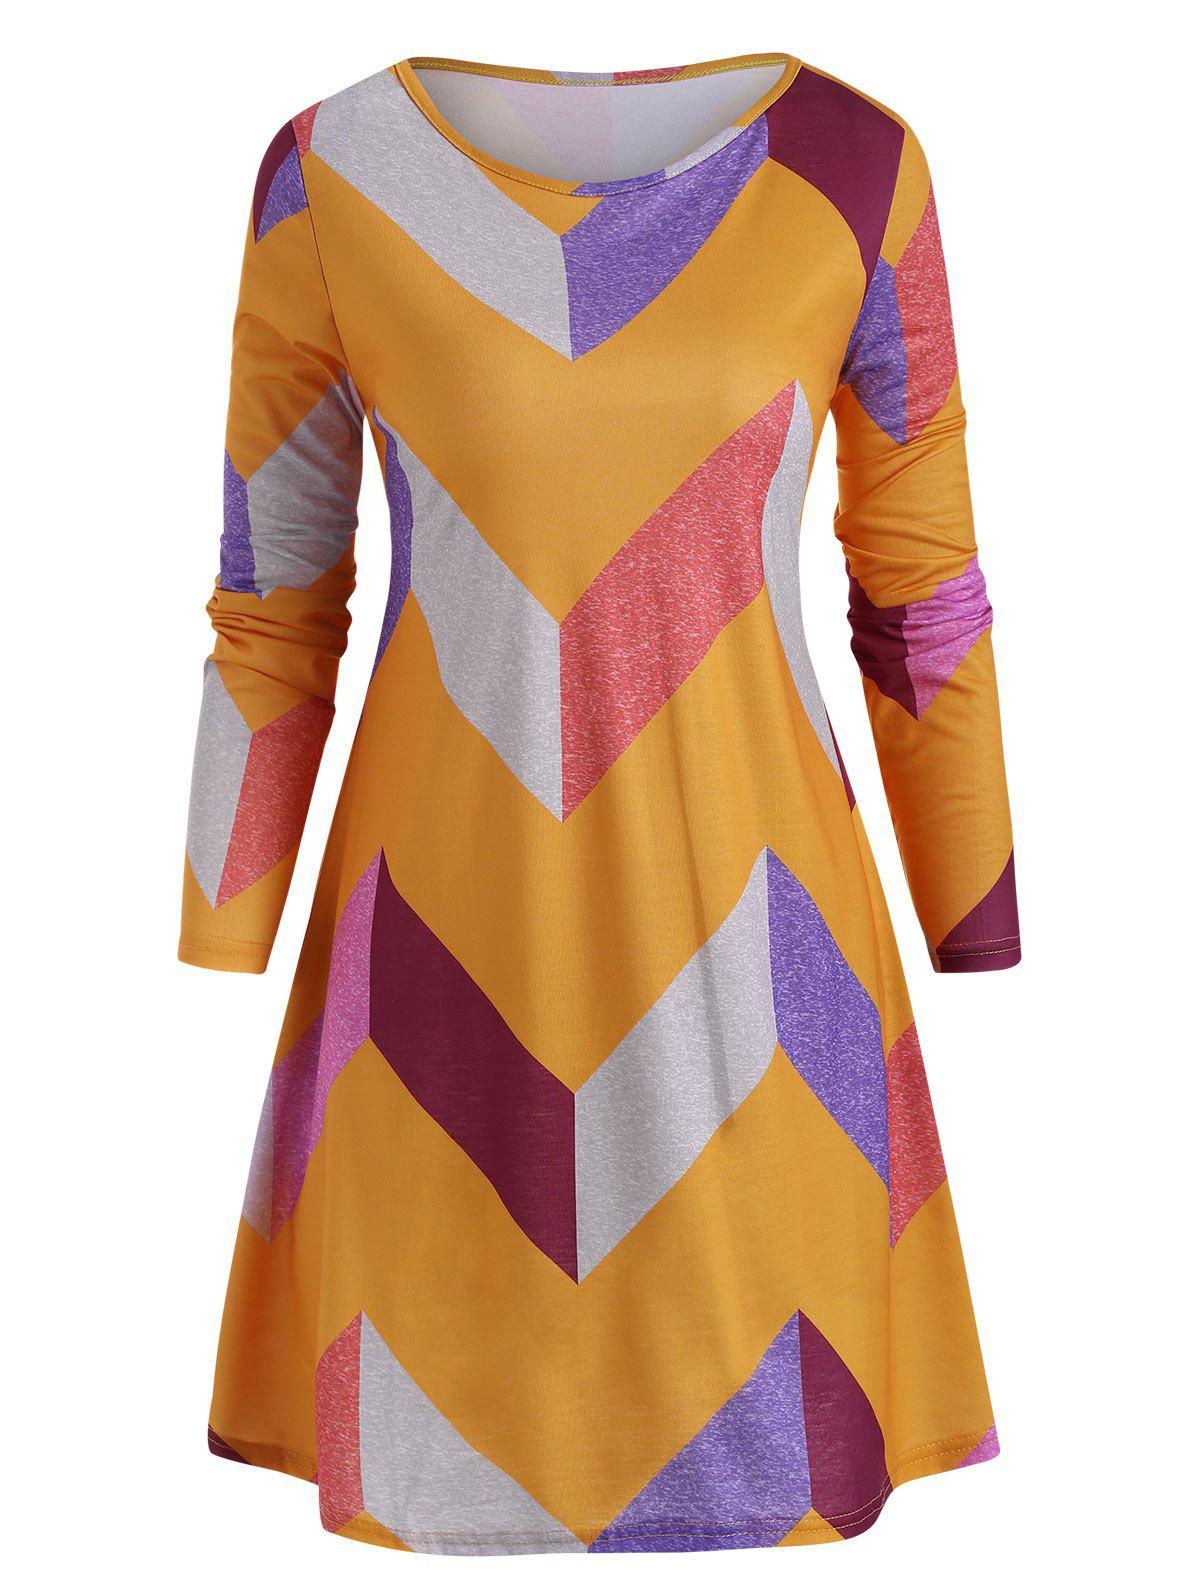 Chic Geometric Colorblock Long Sleeve Tunic Dress